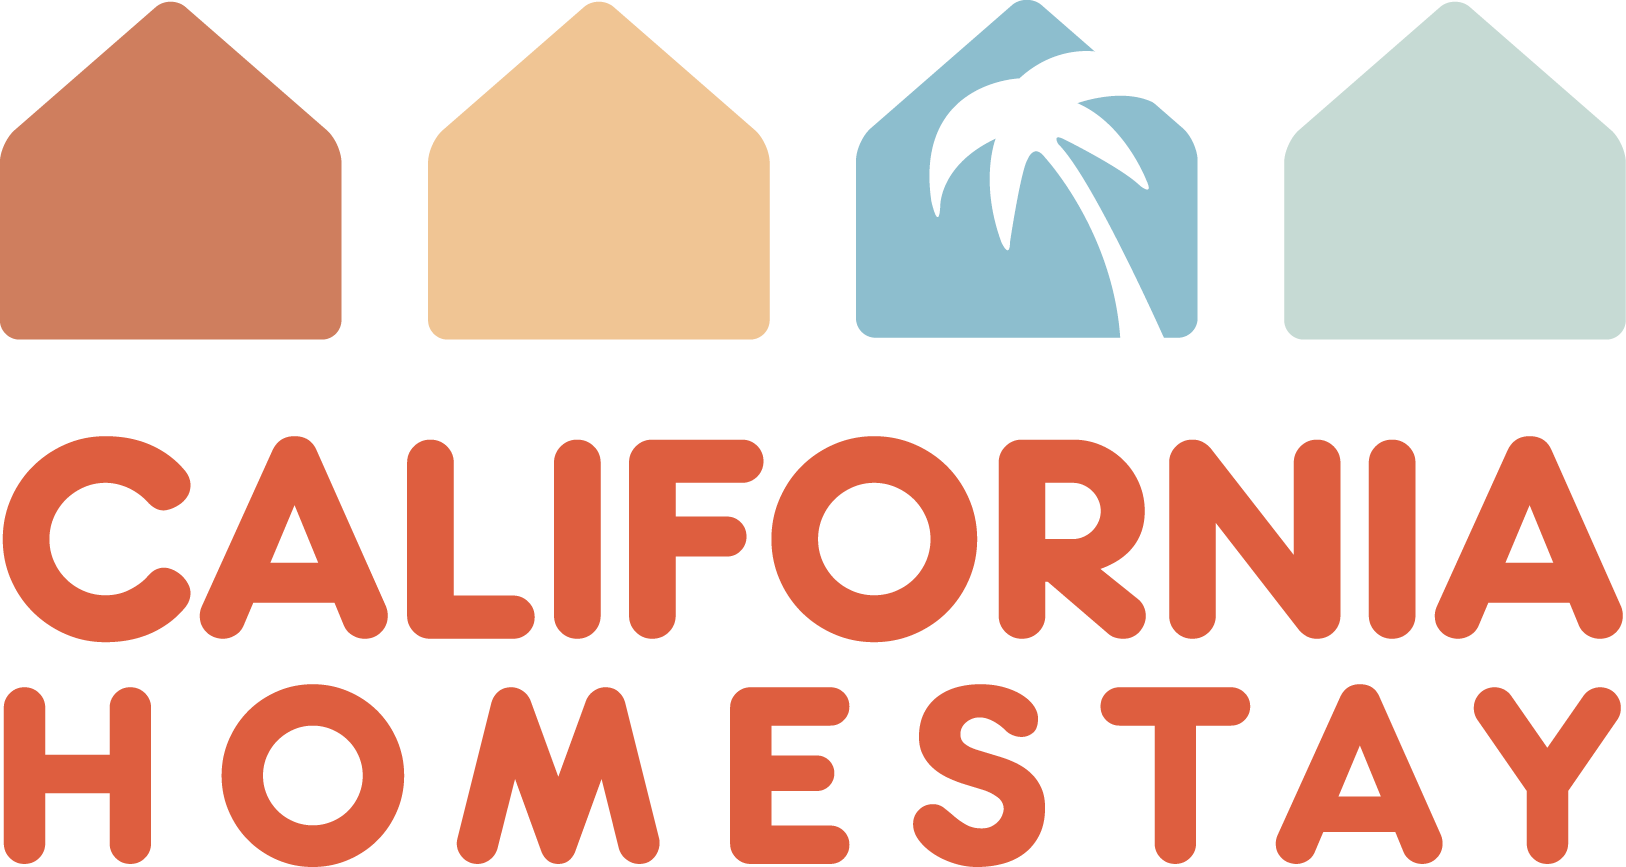 Pastor clipart host family. California homestay in home